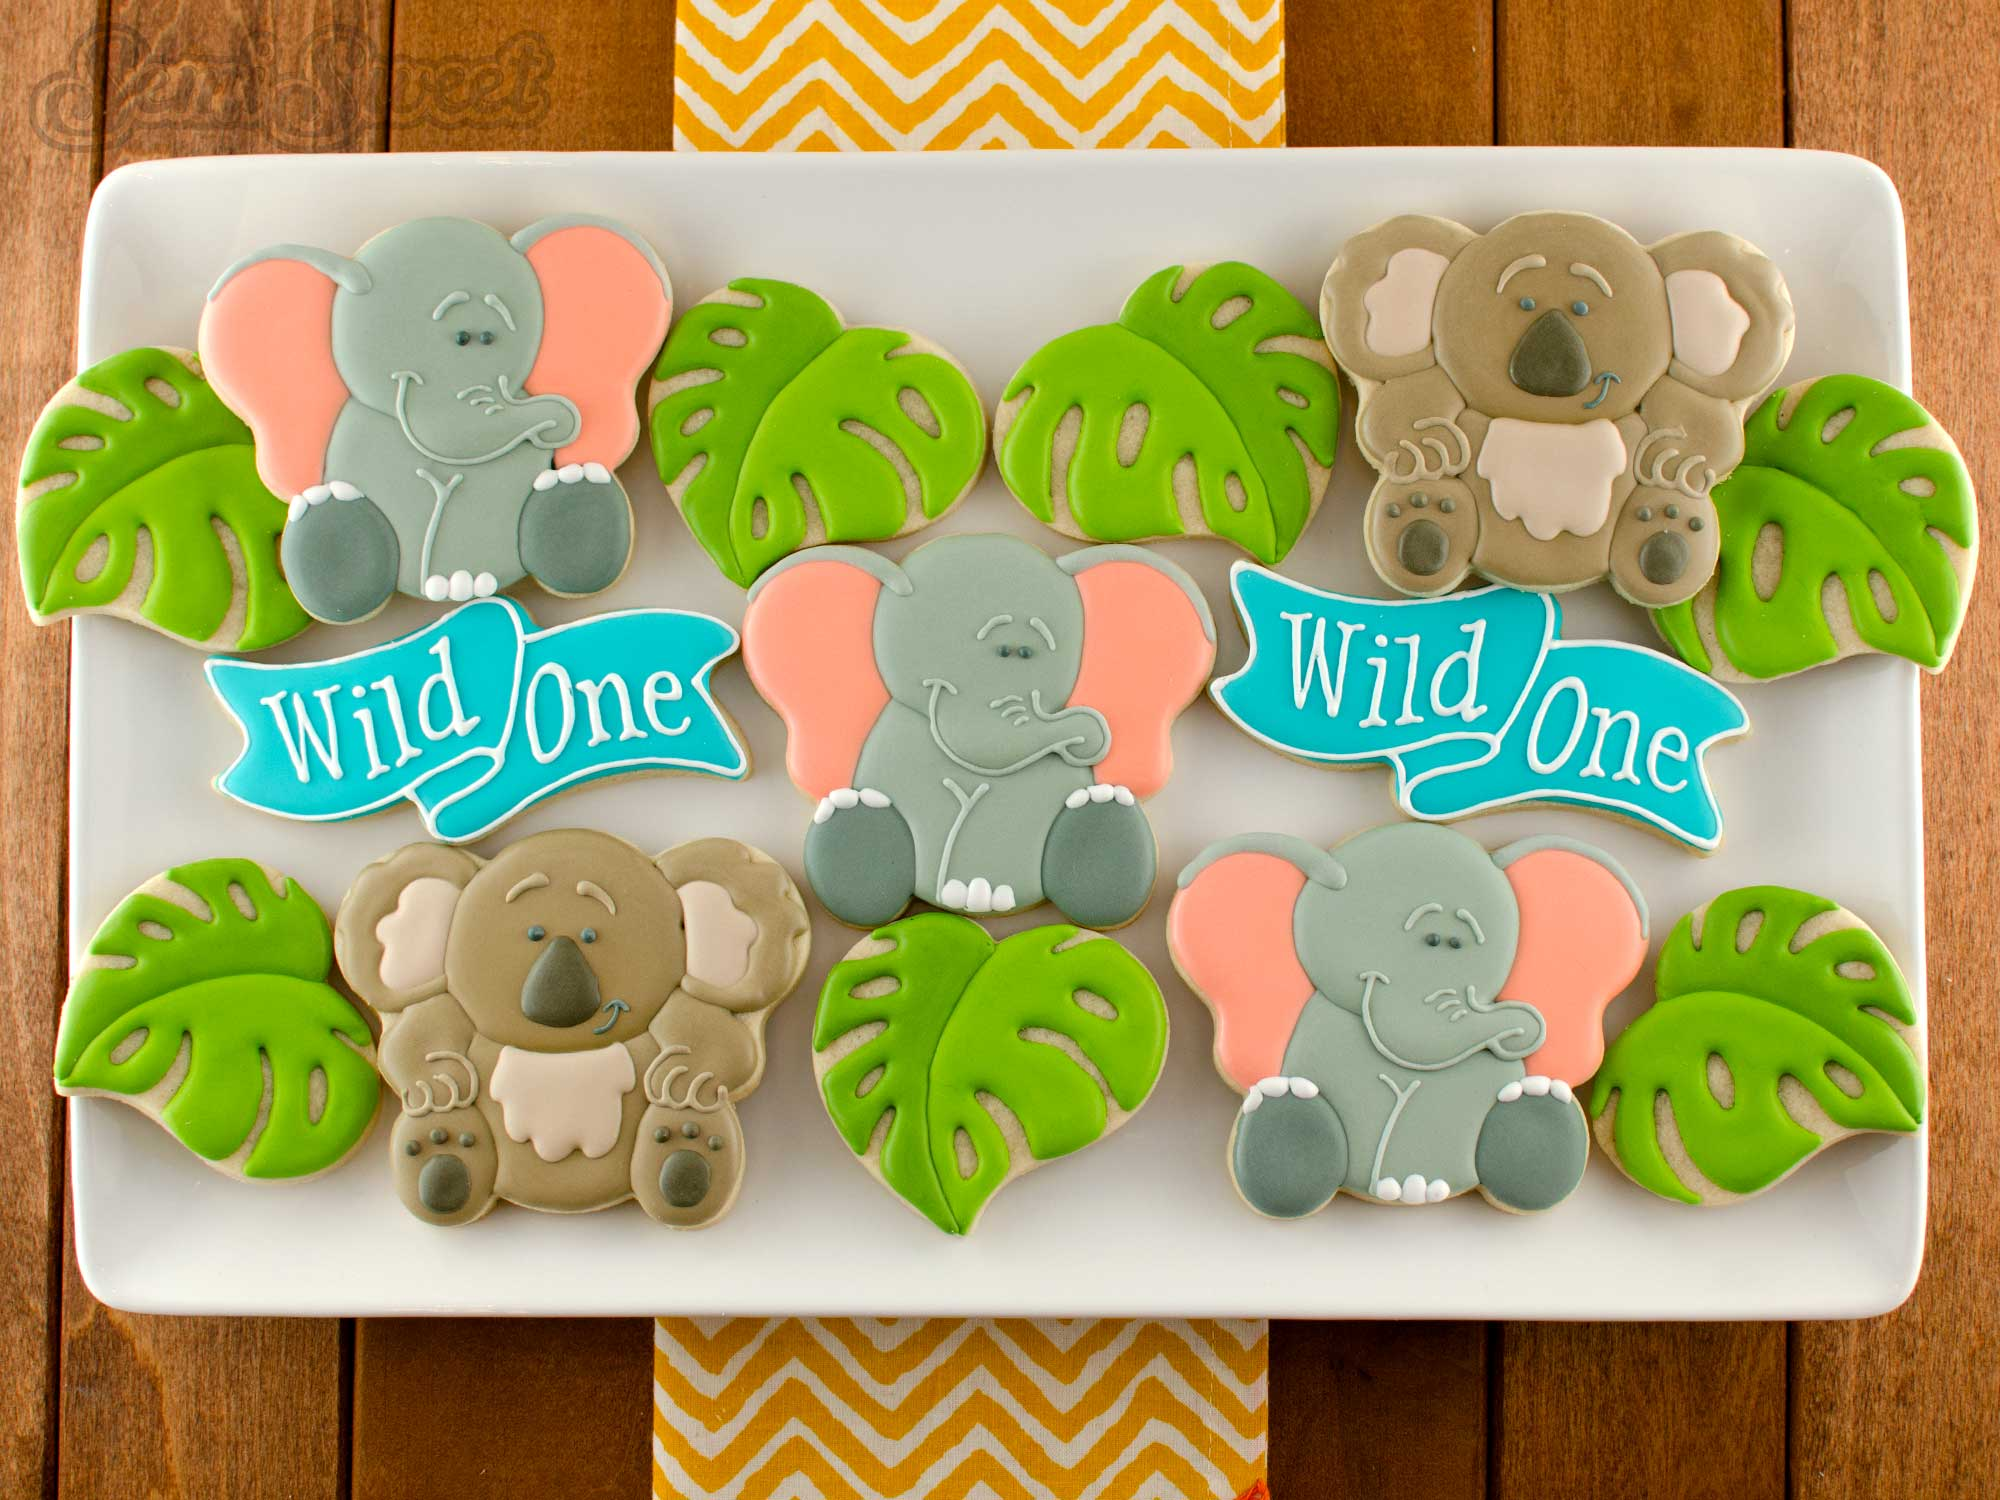 How to Make Elephant Cookies by Semi Sweet Designs